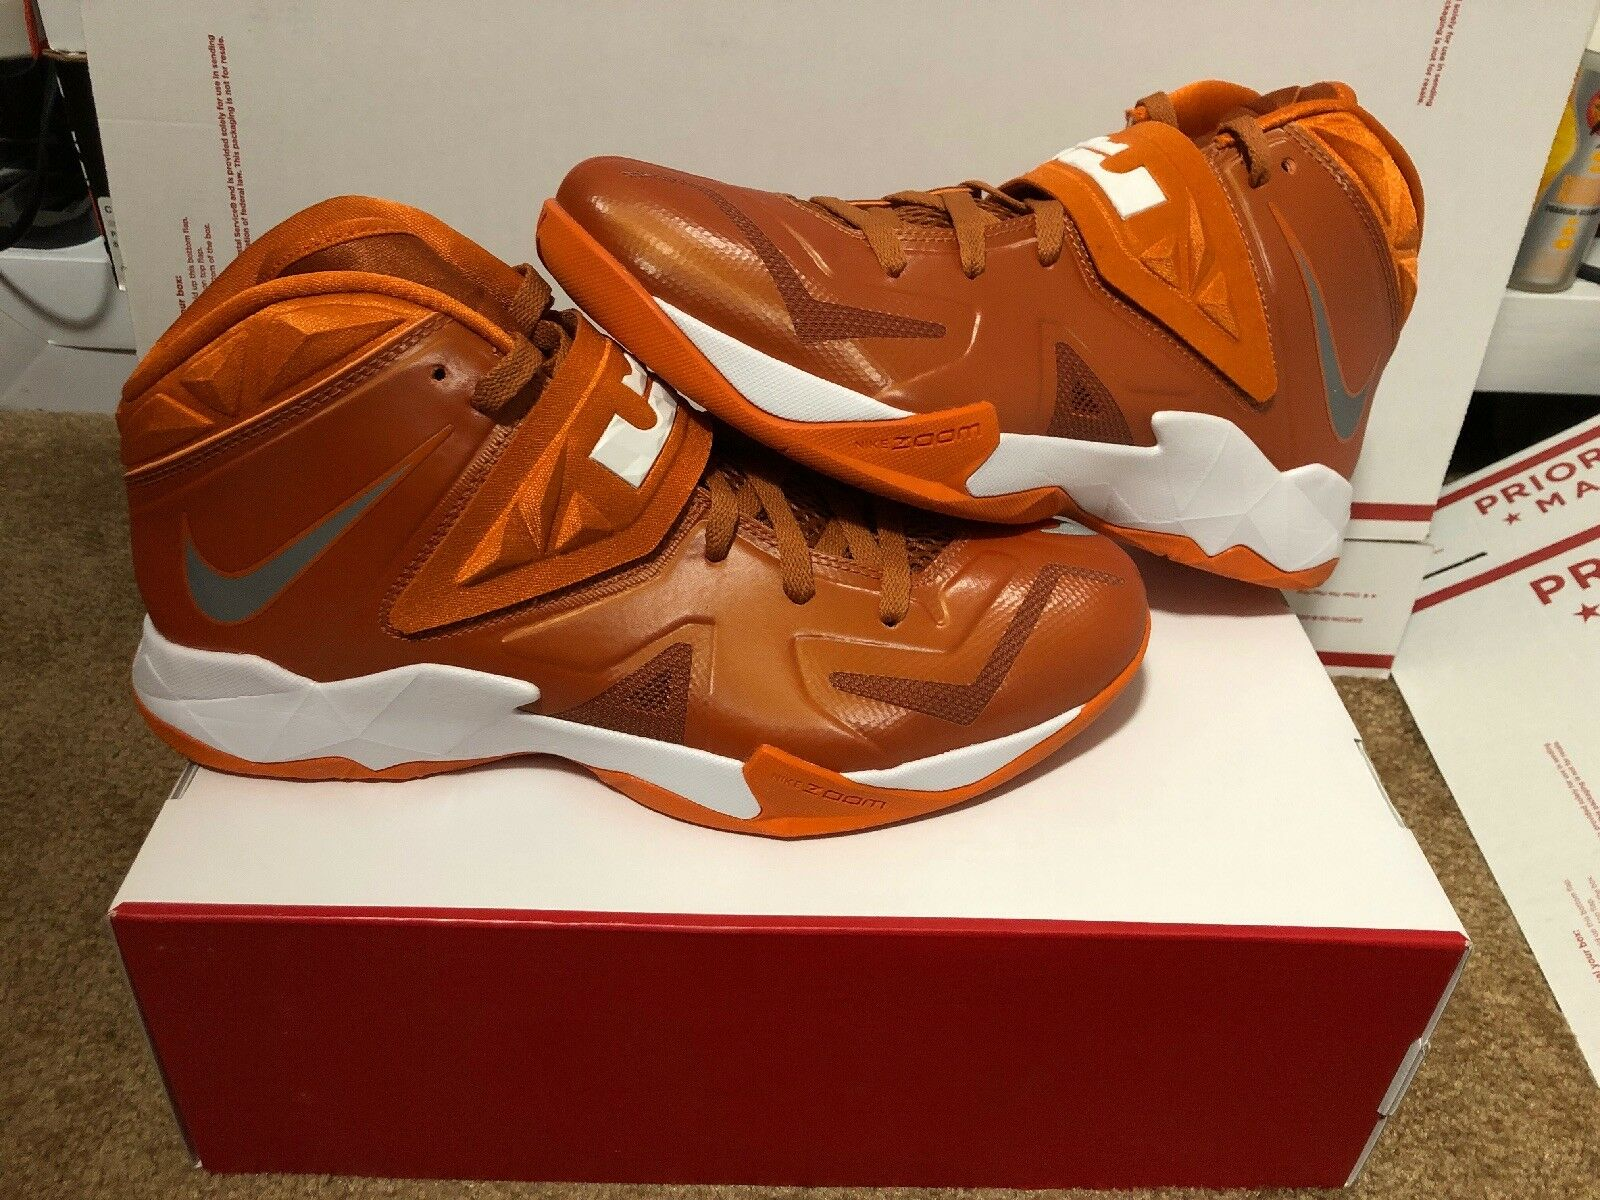 New Women's Nike LeBron Zoom Solider 7 Burnt orange Silver Size 11.5 Longhorns